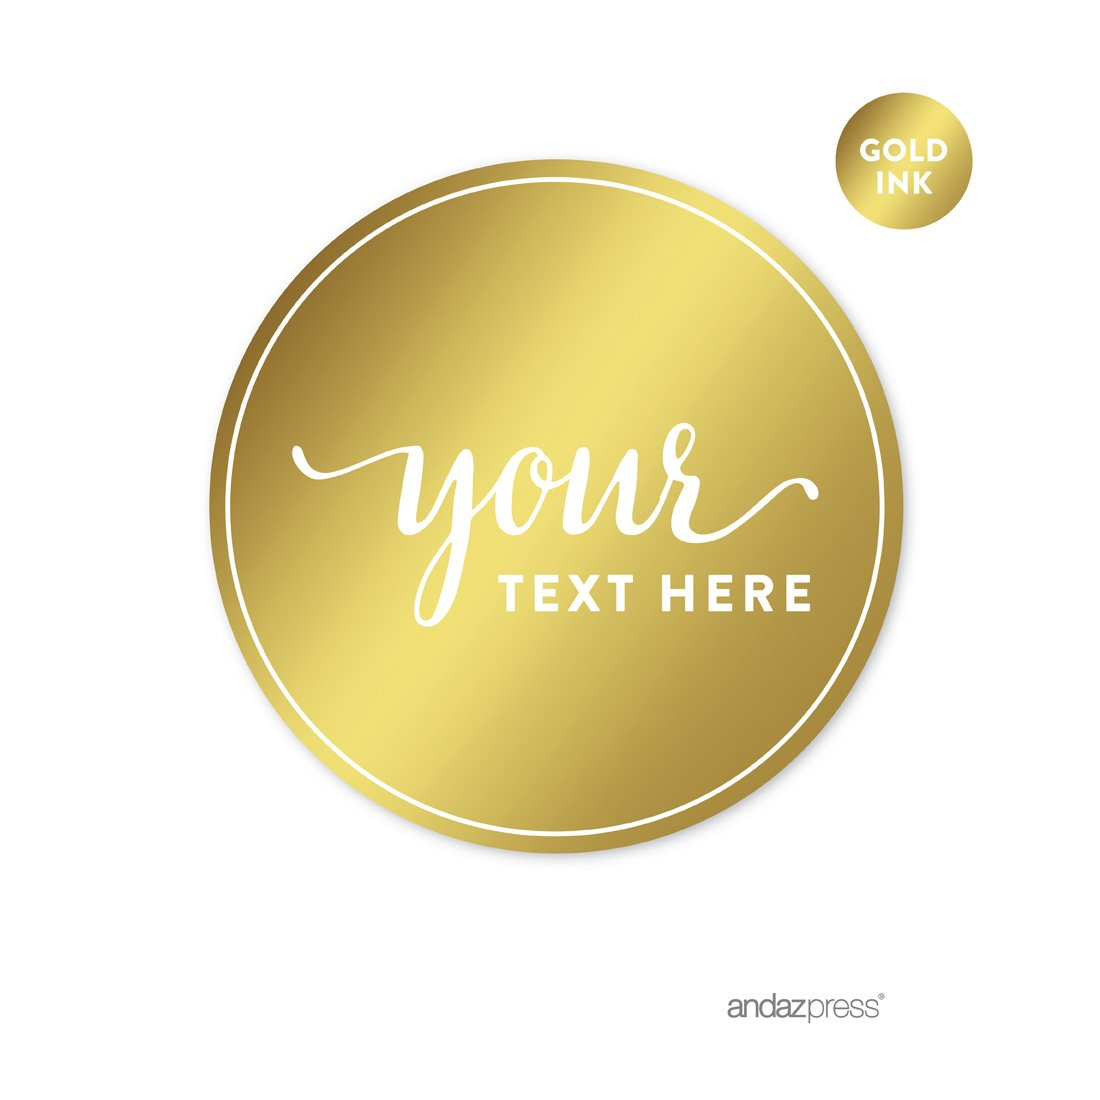 Amazon com andaz press fully personalized round circle label stickers metallic gold ink solid gold 40 pack custom made any text not gold foil for